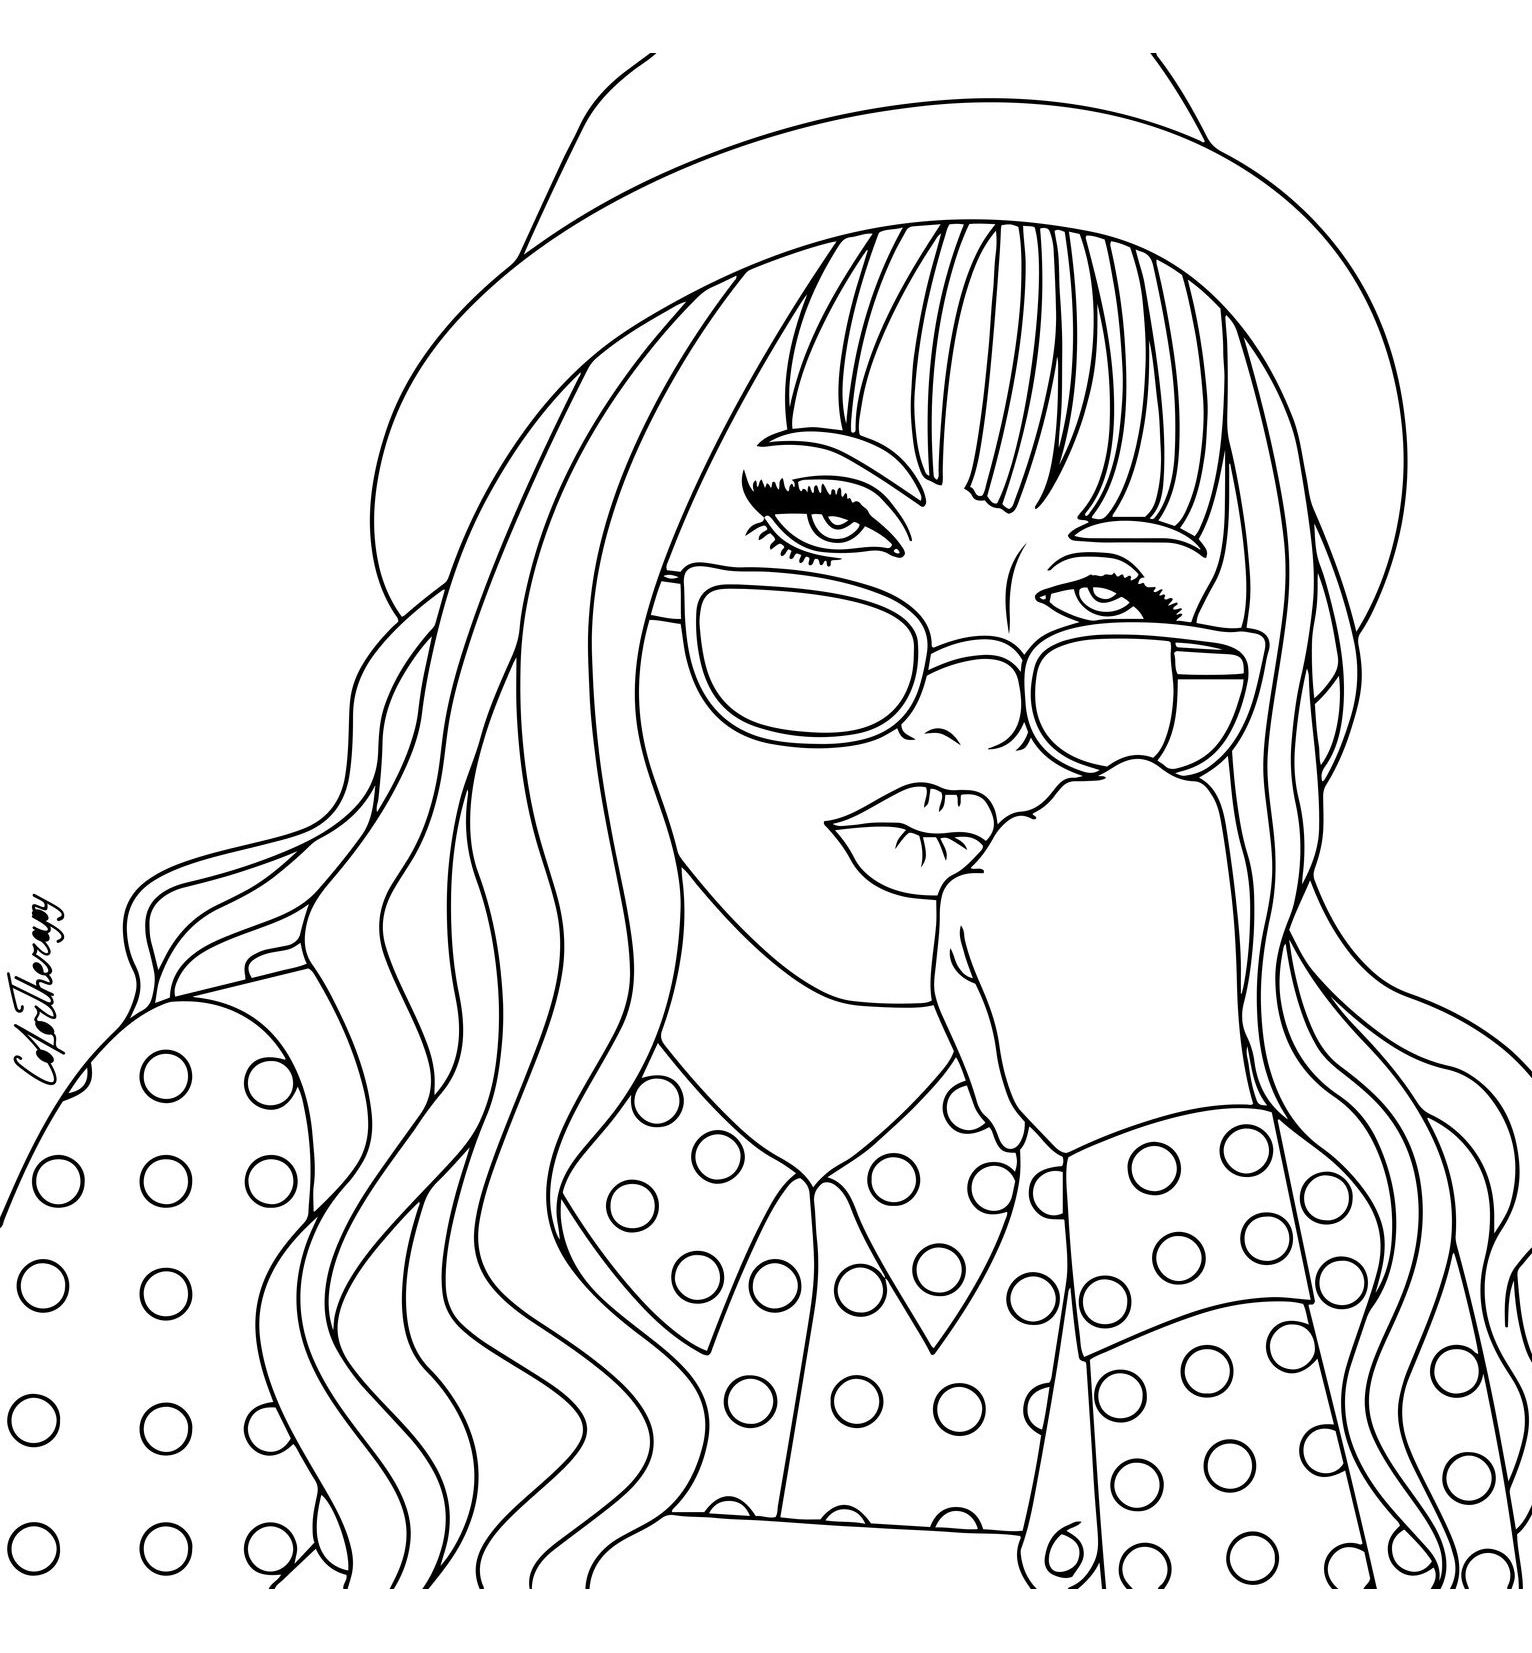 blank coloring pages free printable christmas tree coloring pages for kids blank coloring pages